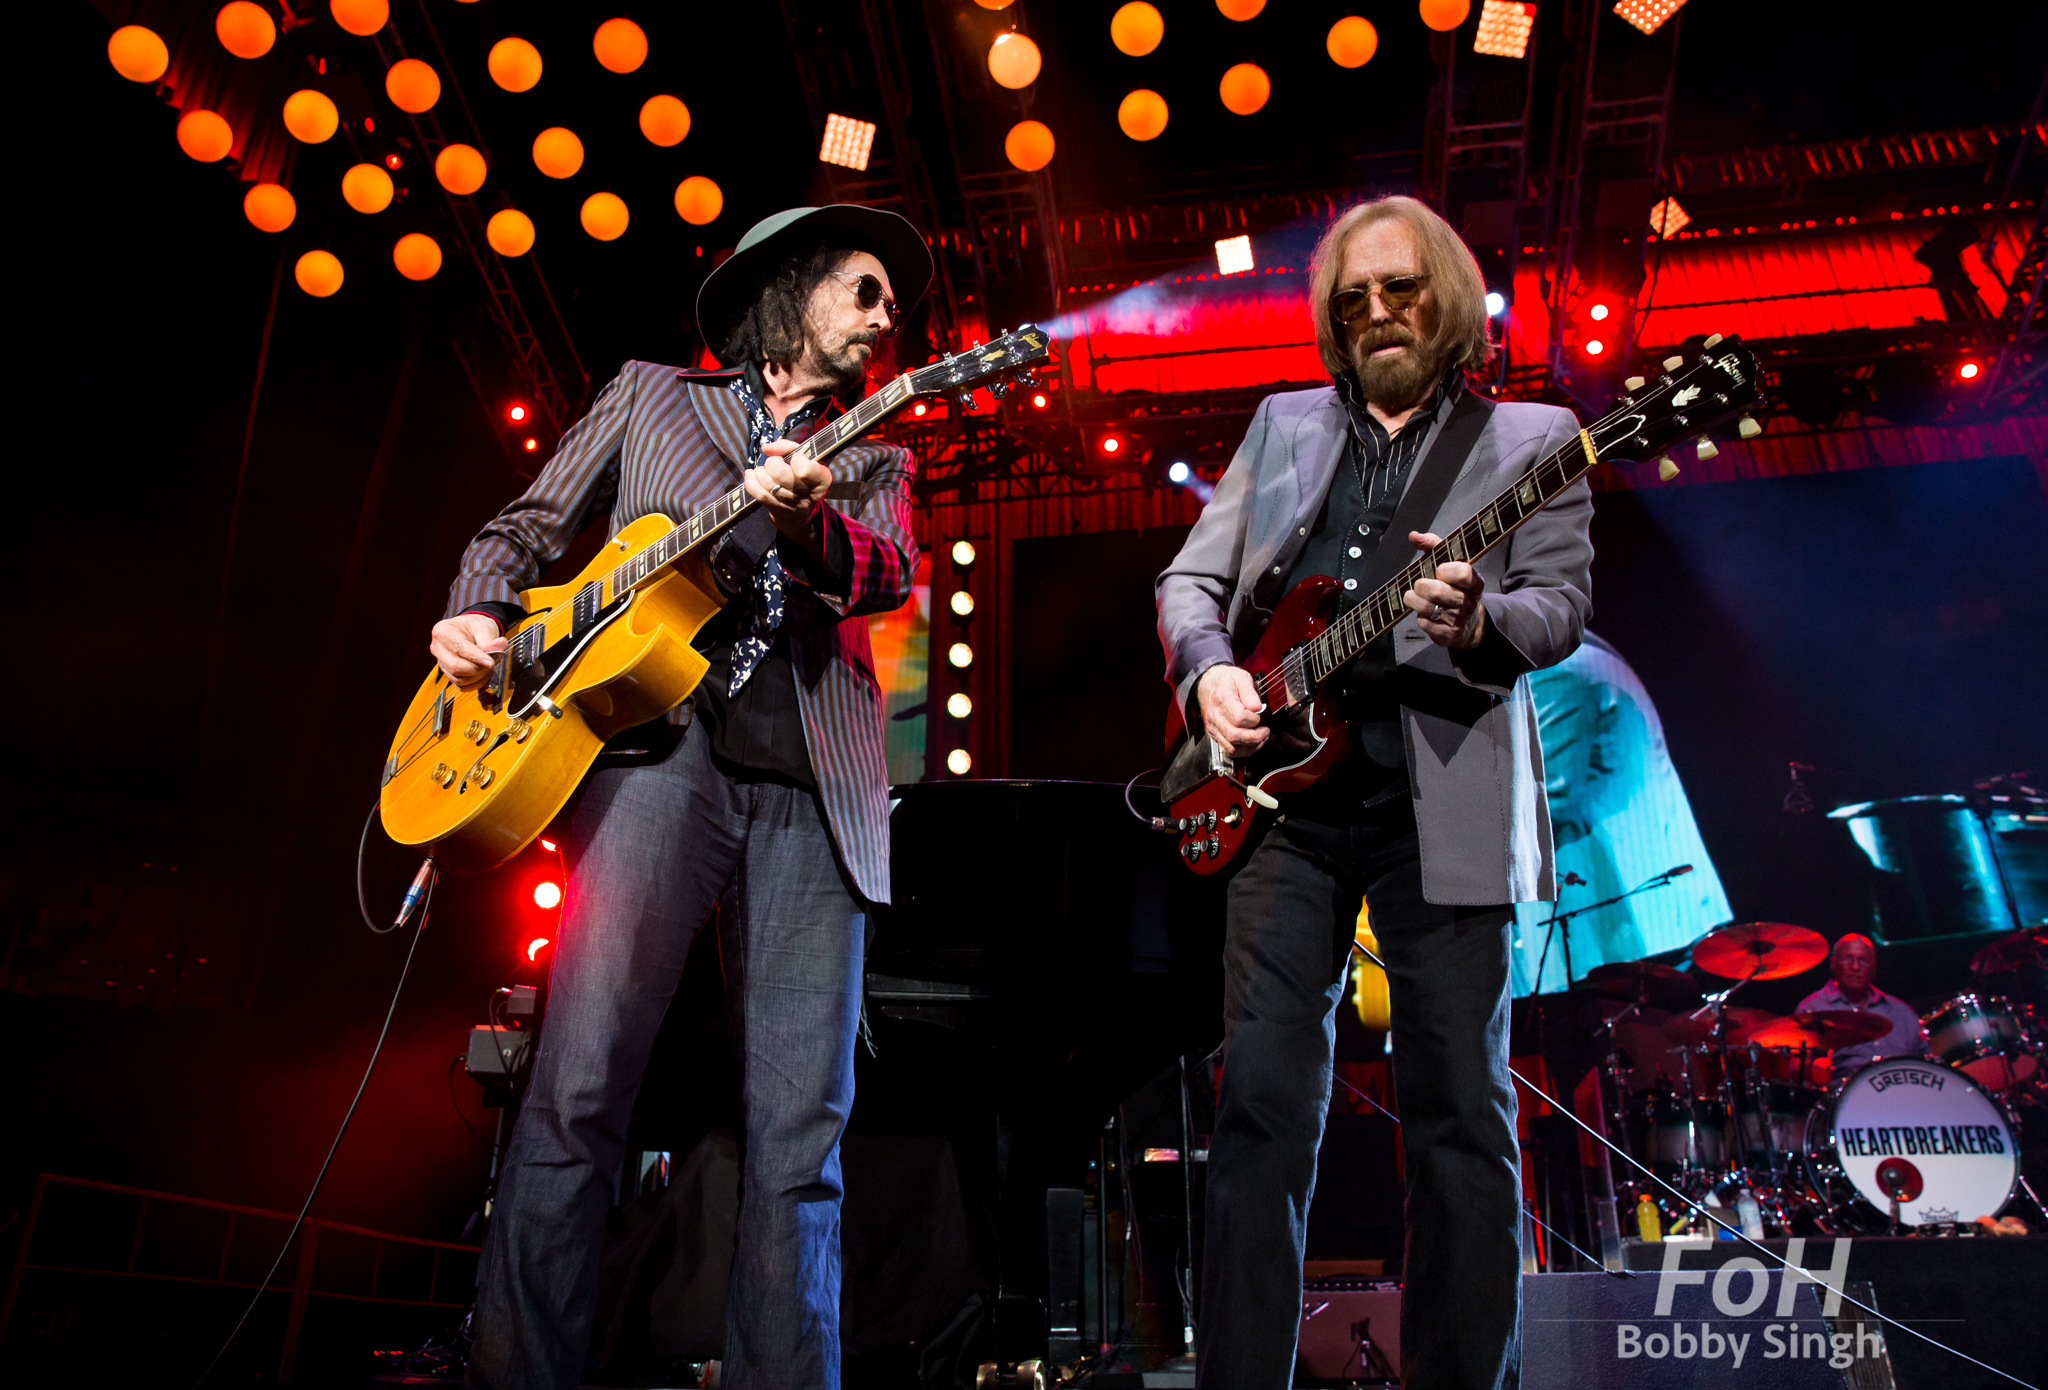 Tom Petty performing in Toronto with The Heartbreakers in 2017.